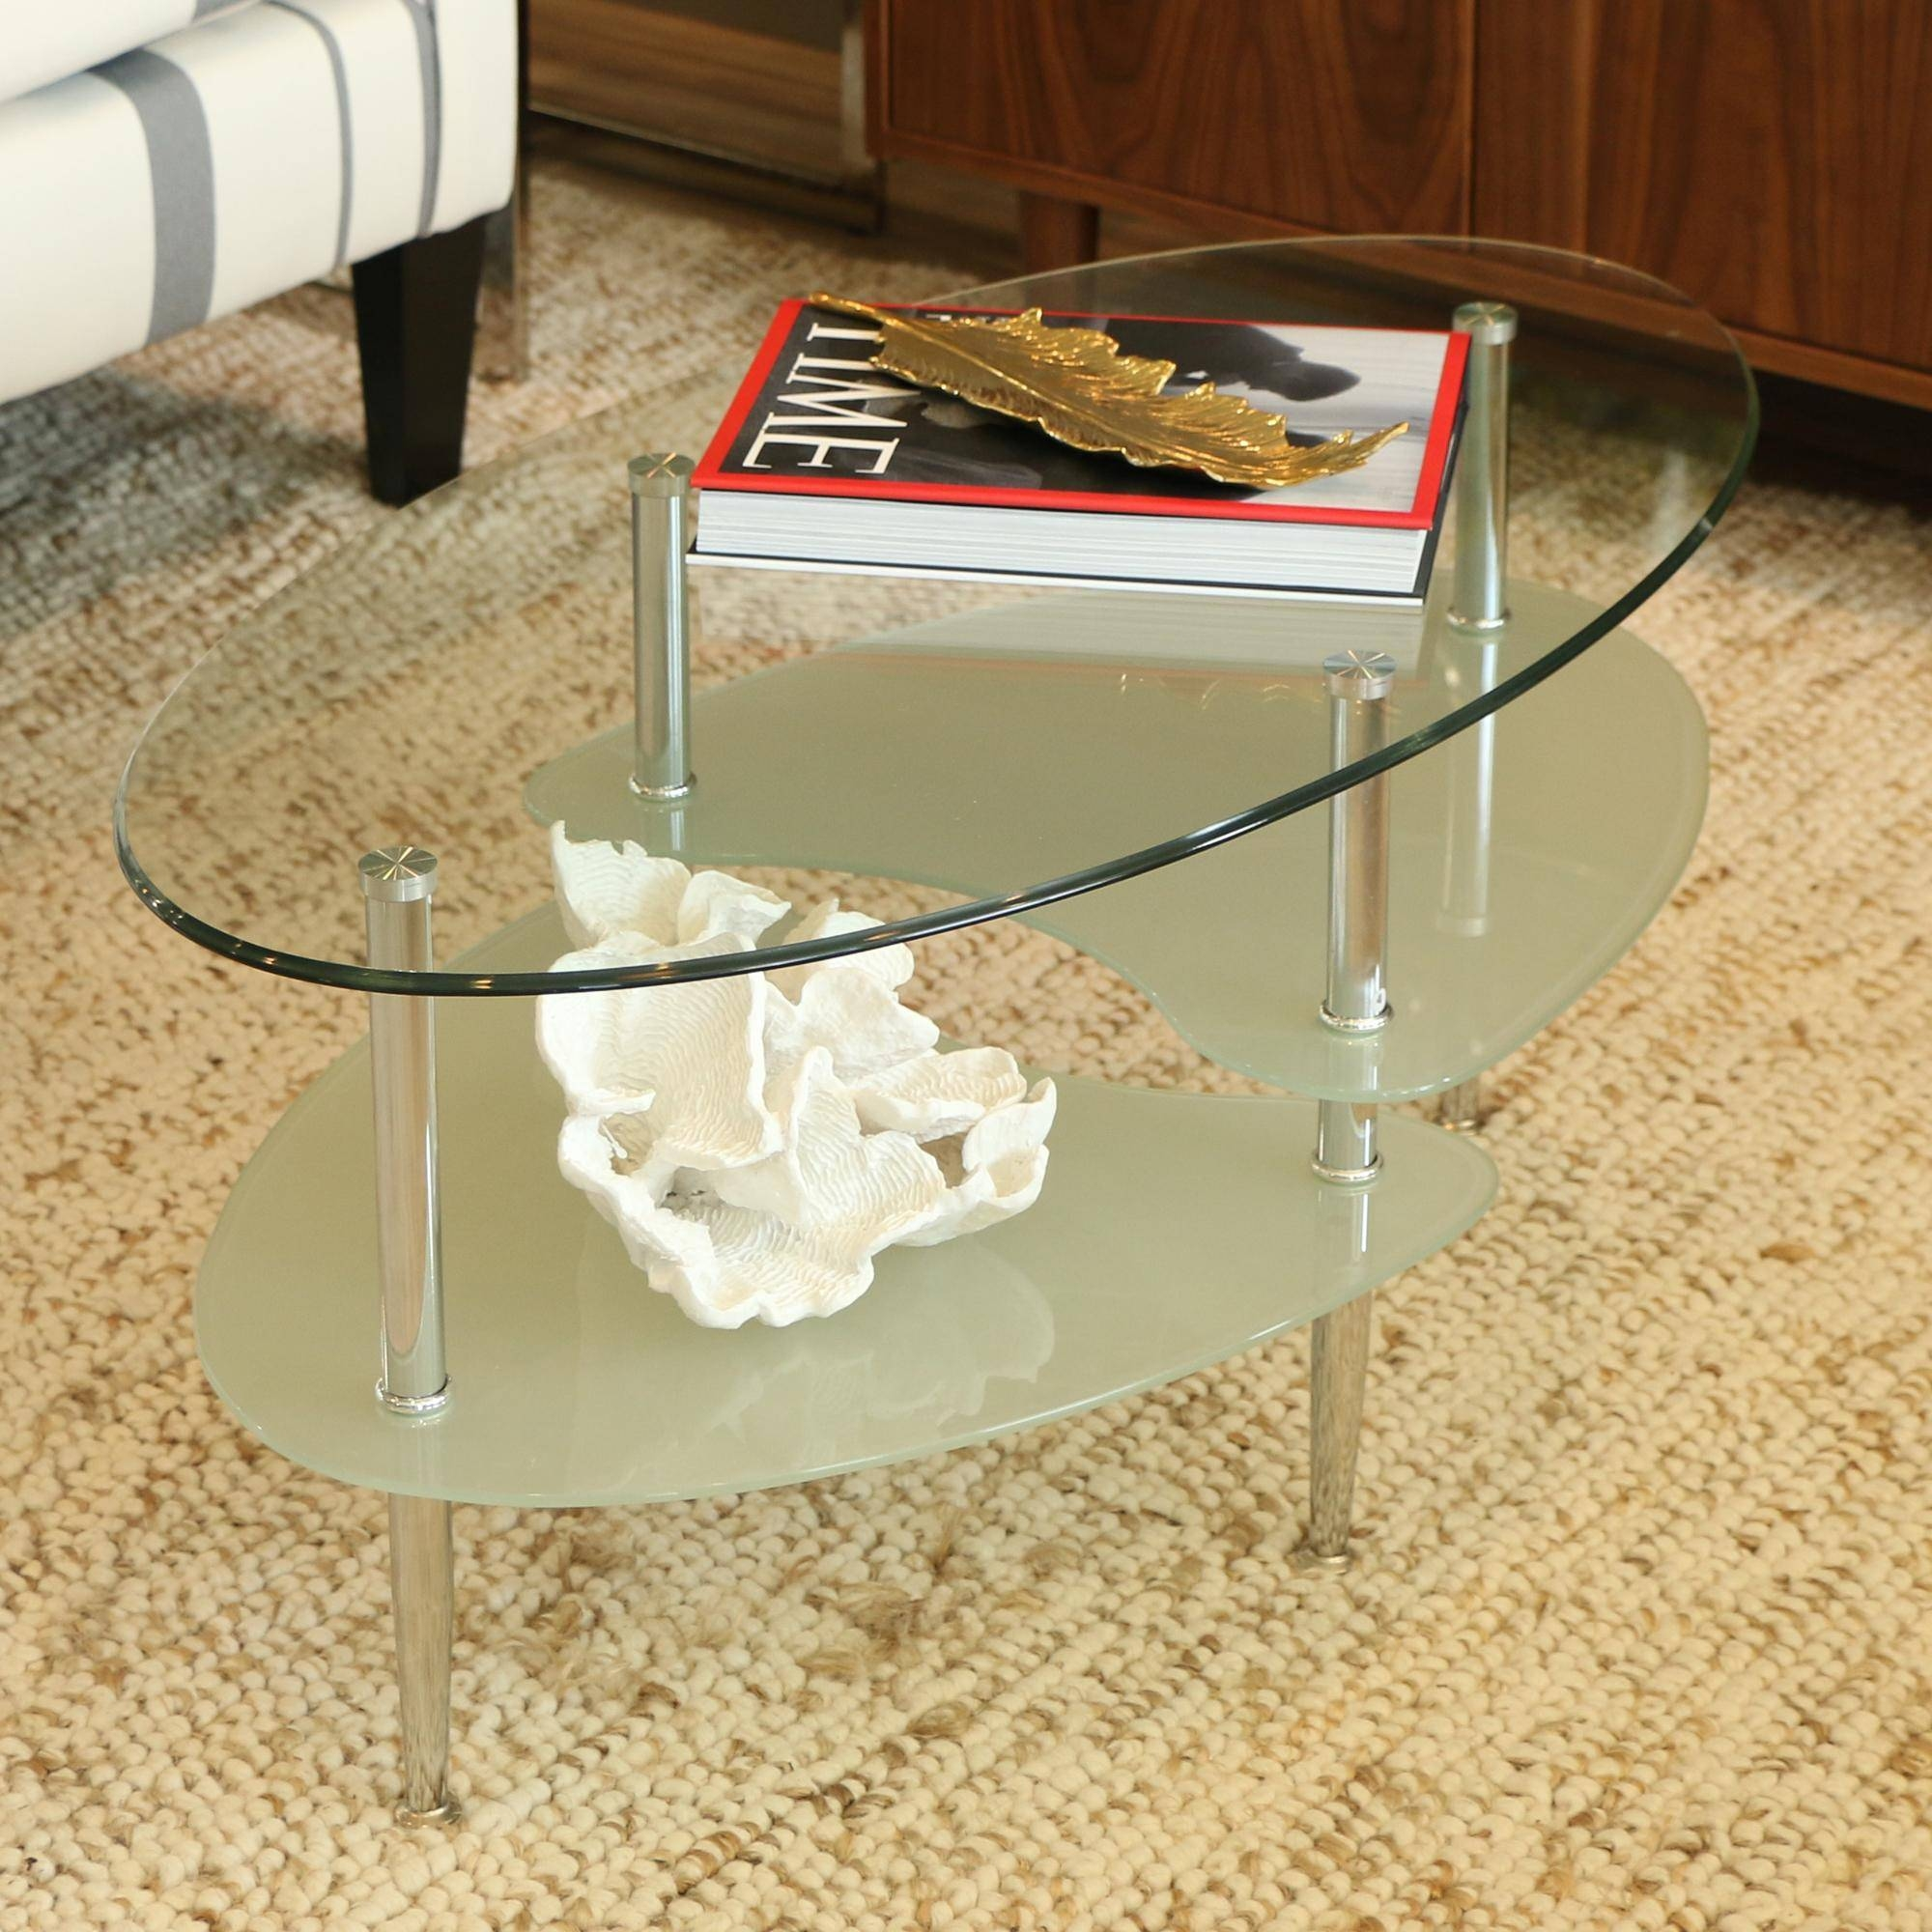 Oval Black Glass Coffee Table With 2 Glass Shelves | Coffee Tables pertaining to Oval Black Glass Coffee Tables (Image 23 of 30)